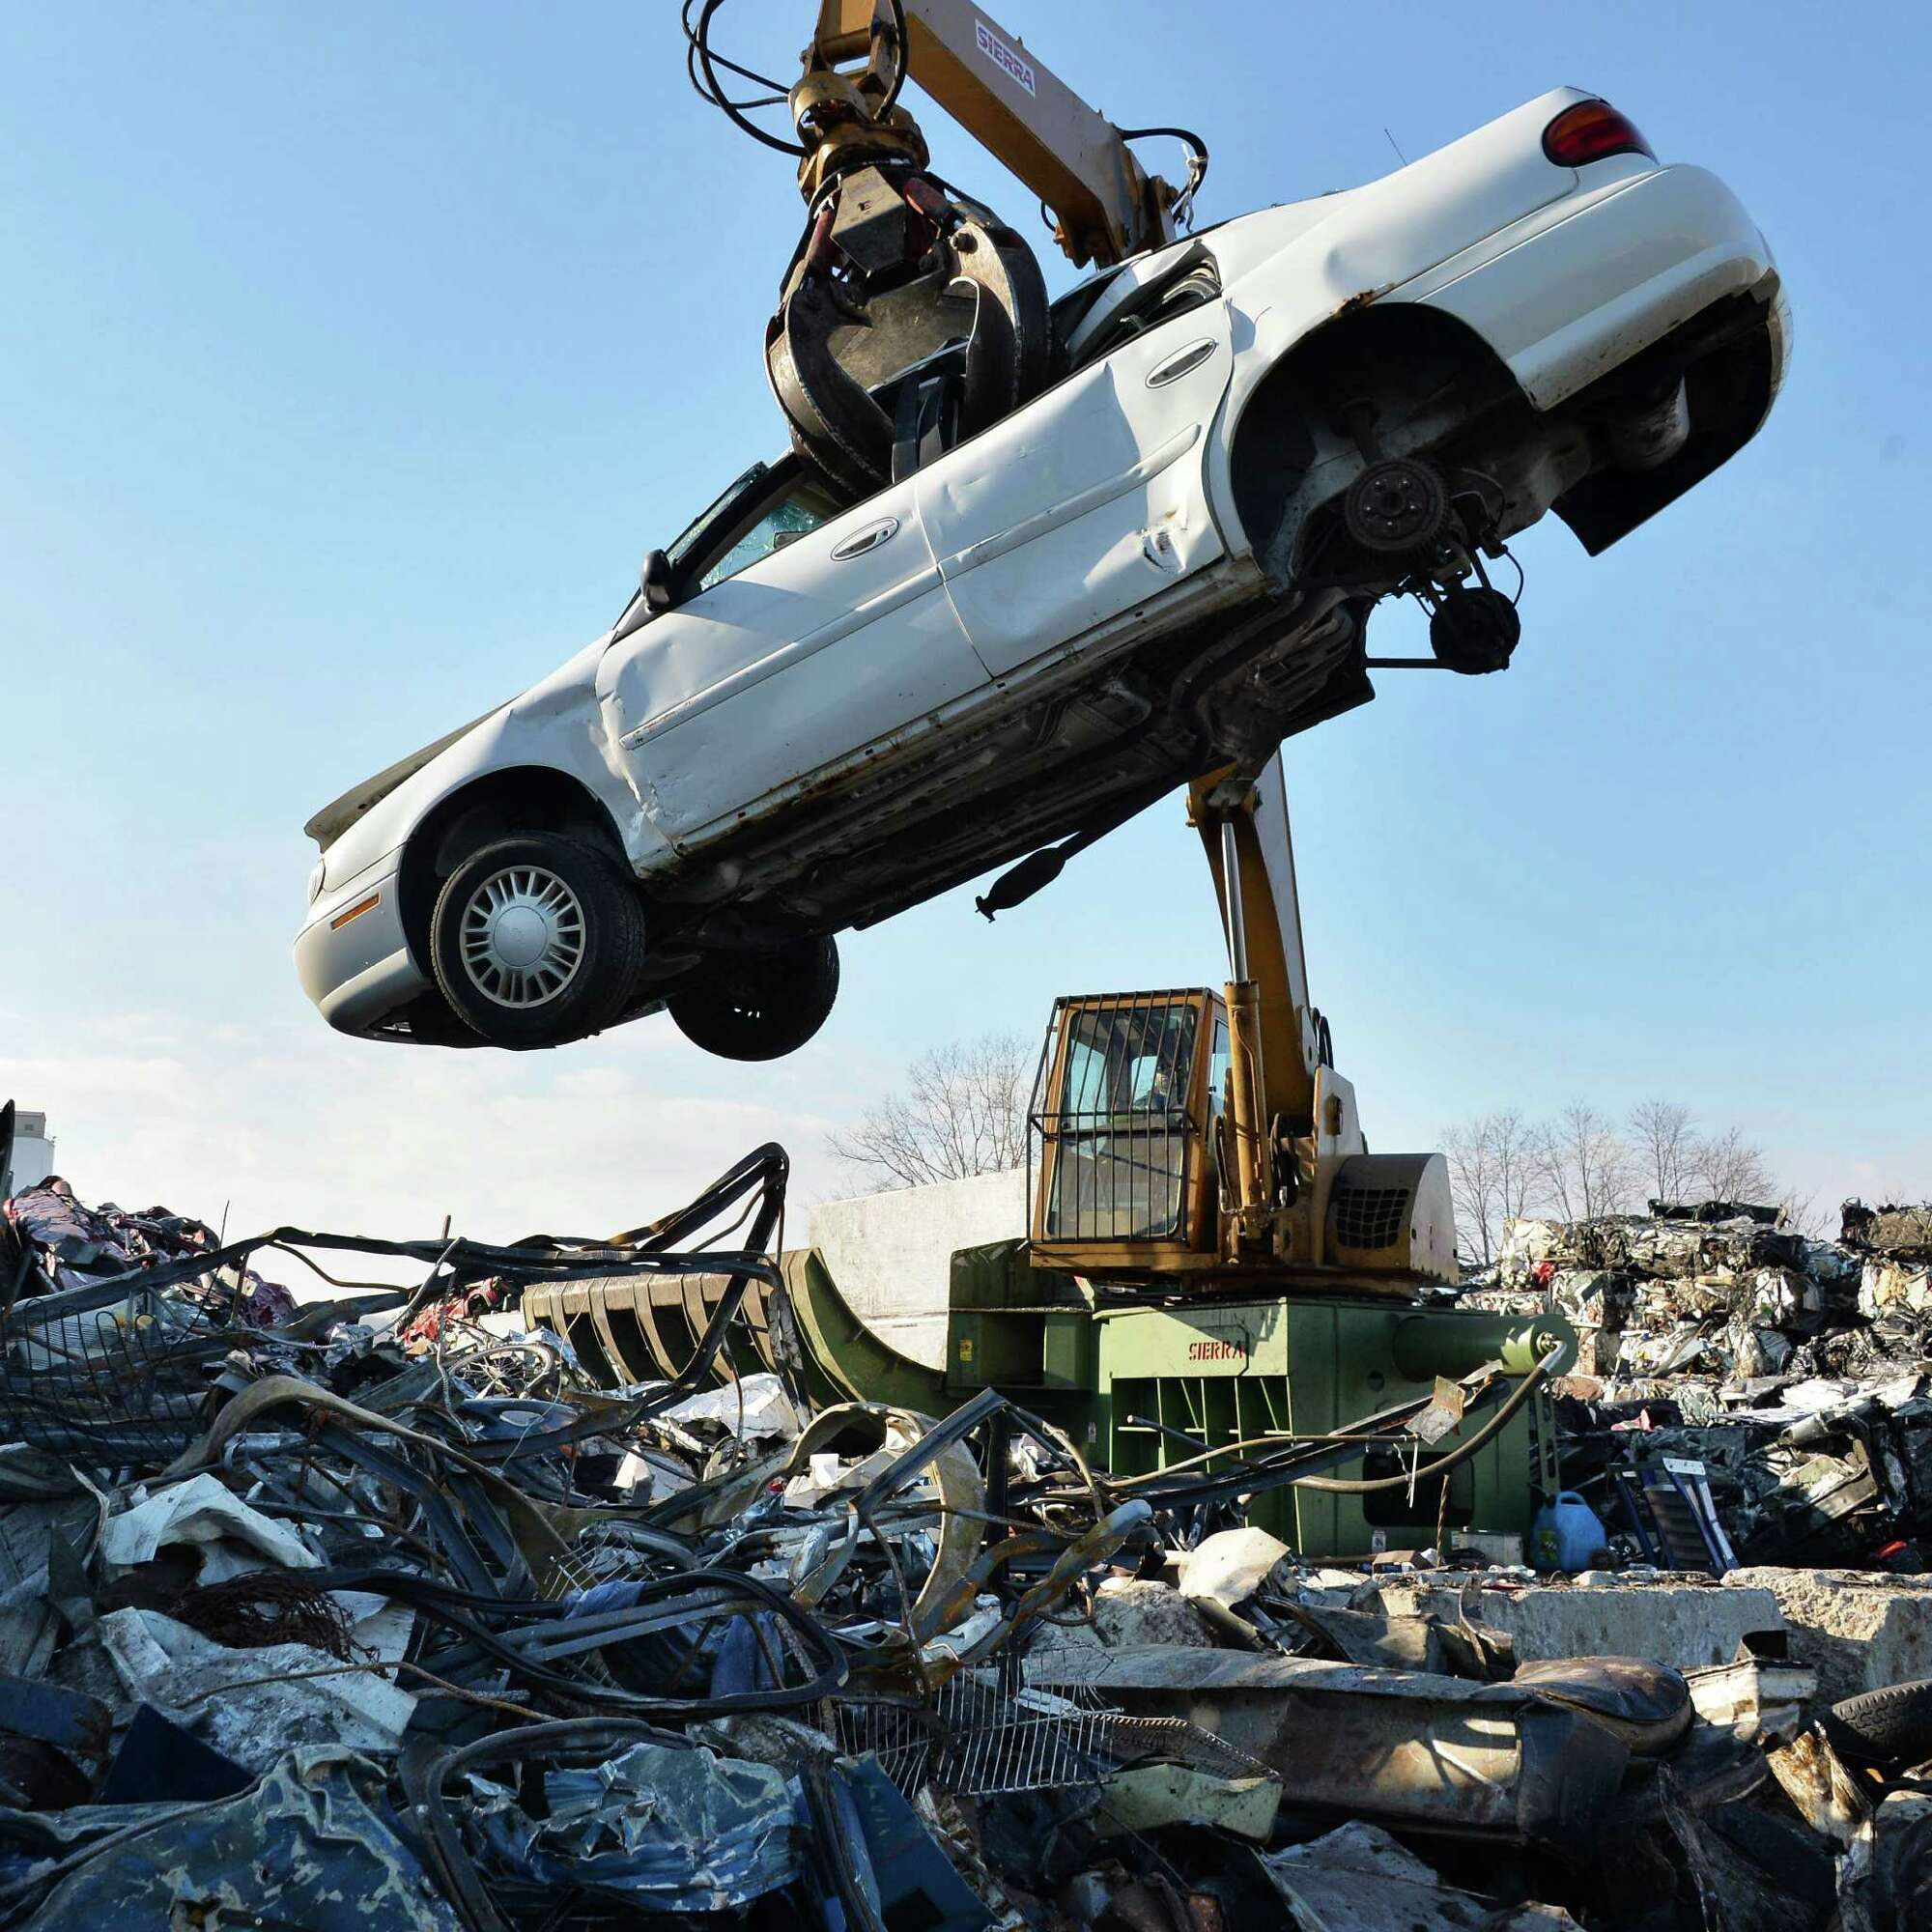 Scrap Prices For Cars In Ny